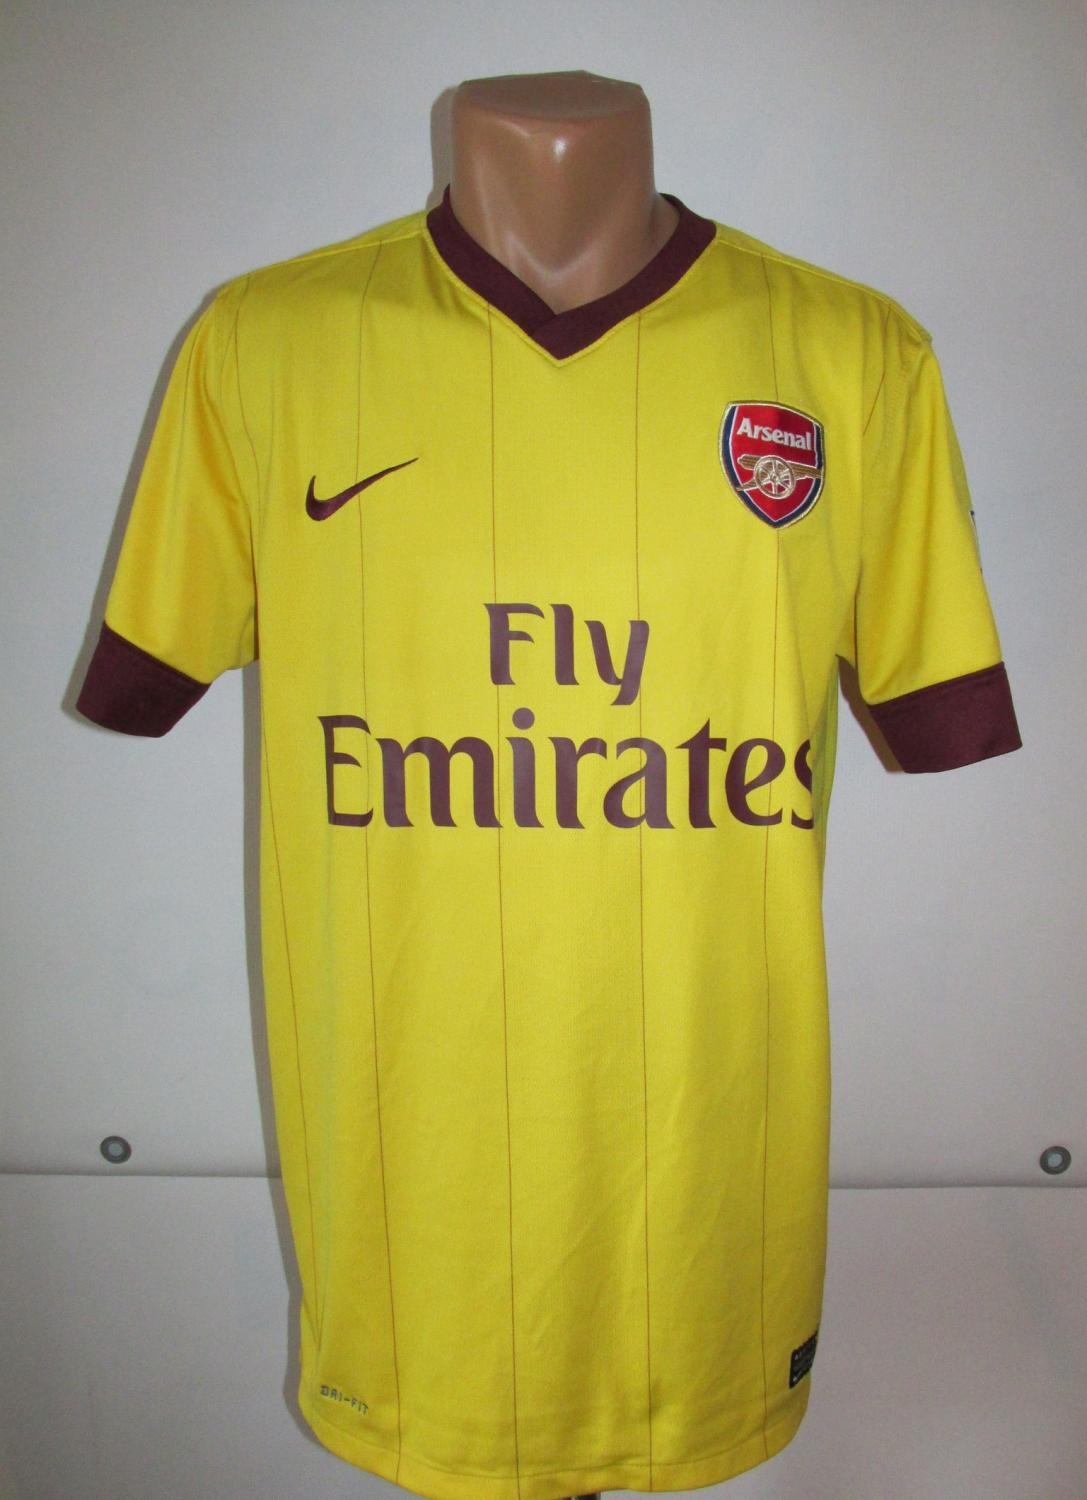 Arsenal ext rieur maillot de foot 2012 2013 ajout 2011 for Arsenal maillot exterieur 2013